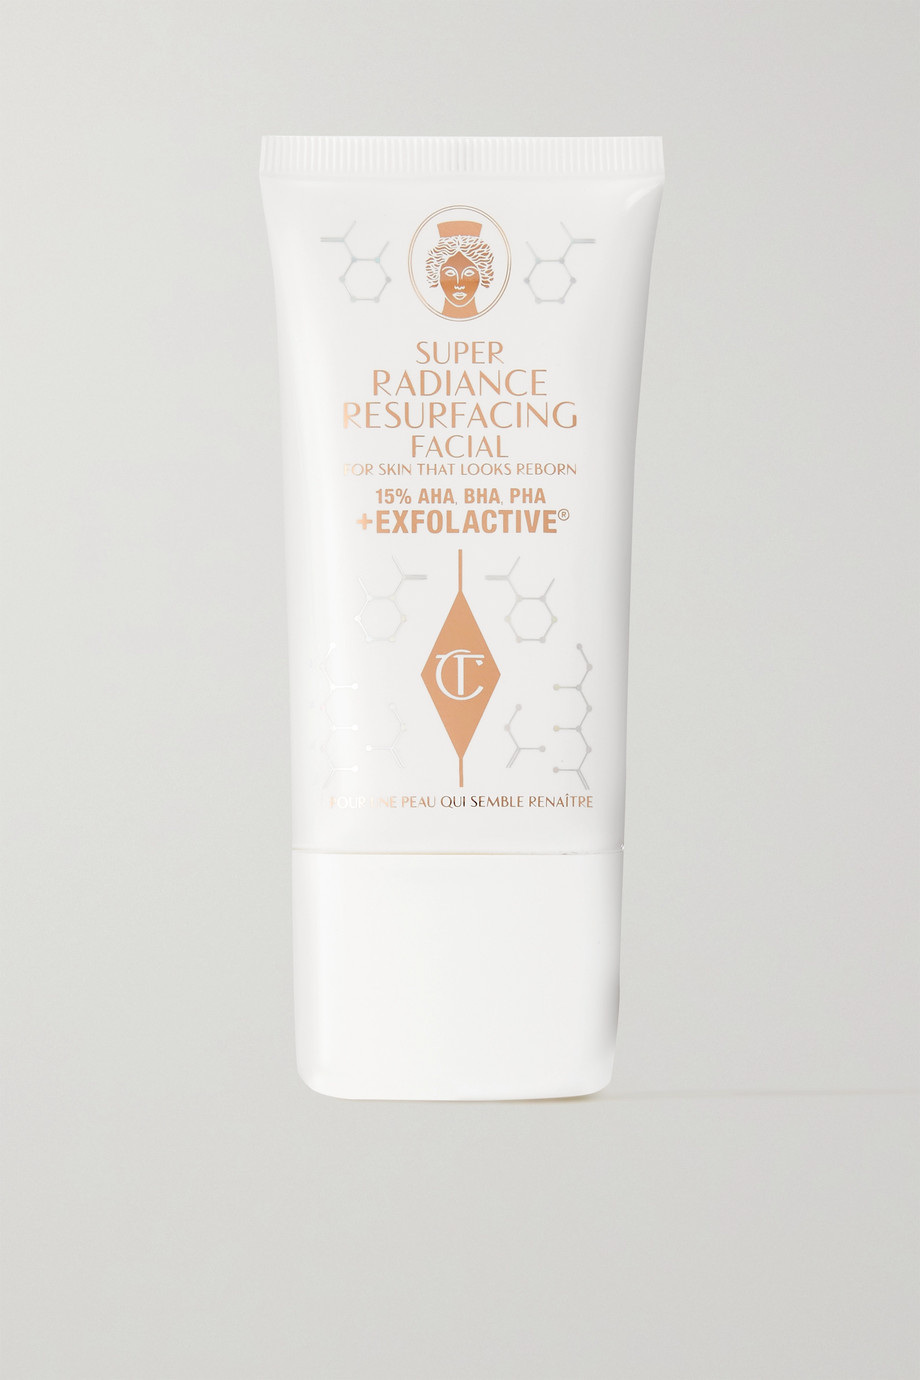 CHARLOTTE TILBURY Super Radiance Resurfacing Facial, 50ml